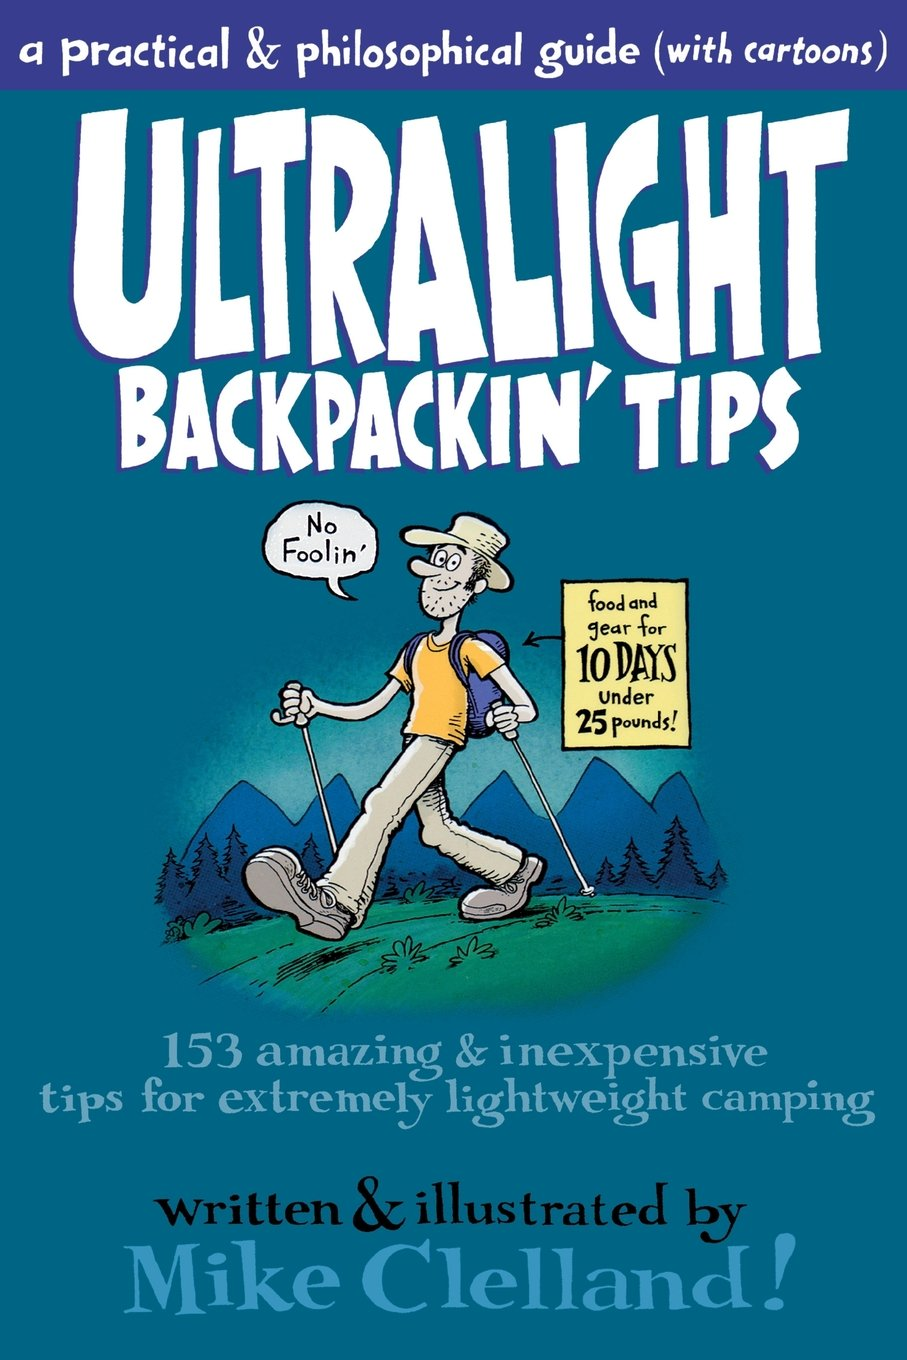 Ultralight Backpackinu0027 Tips 153 Amazing u0026 Inexpensive Tips For Extremely Lightweight C&ing Mike Clelland 8601400624937 Amazon.com Books  sc 1 st  Amazon.com & Ultralight Backpackinu0027 Tips: 153 Amazing u0026 Inexpensive Tips For ...